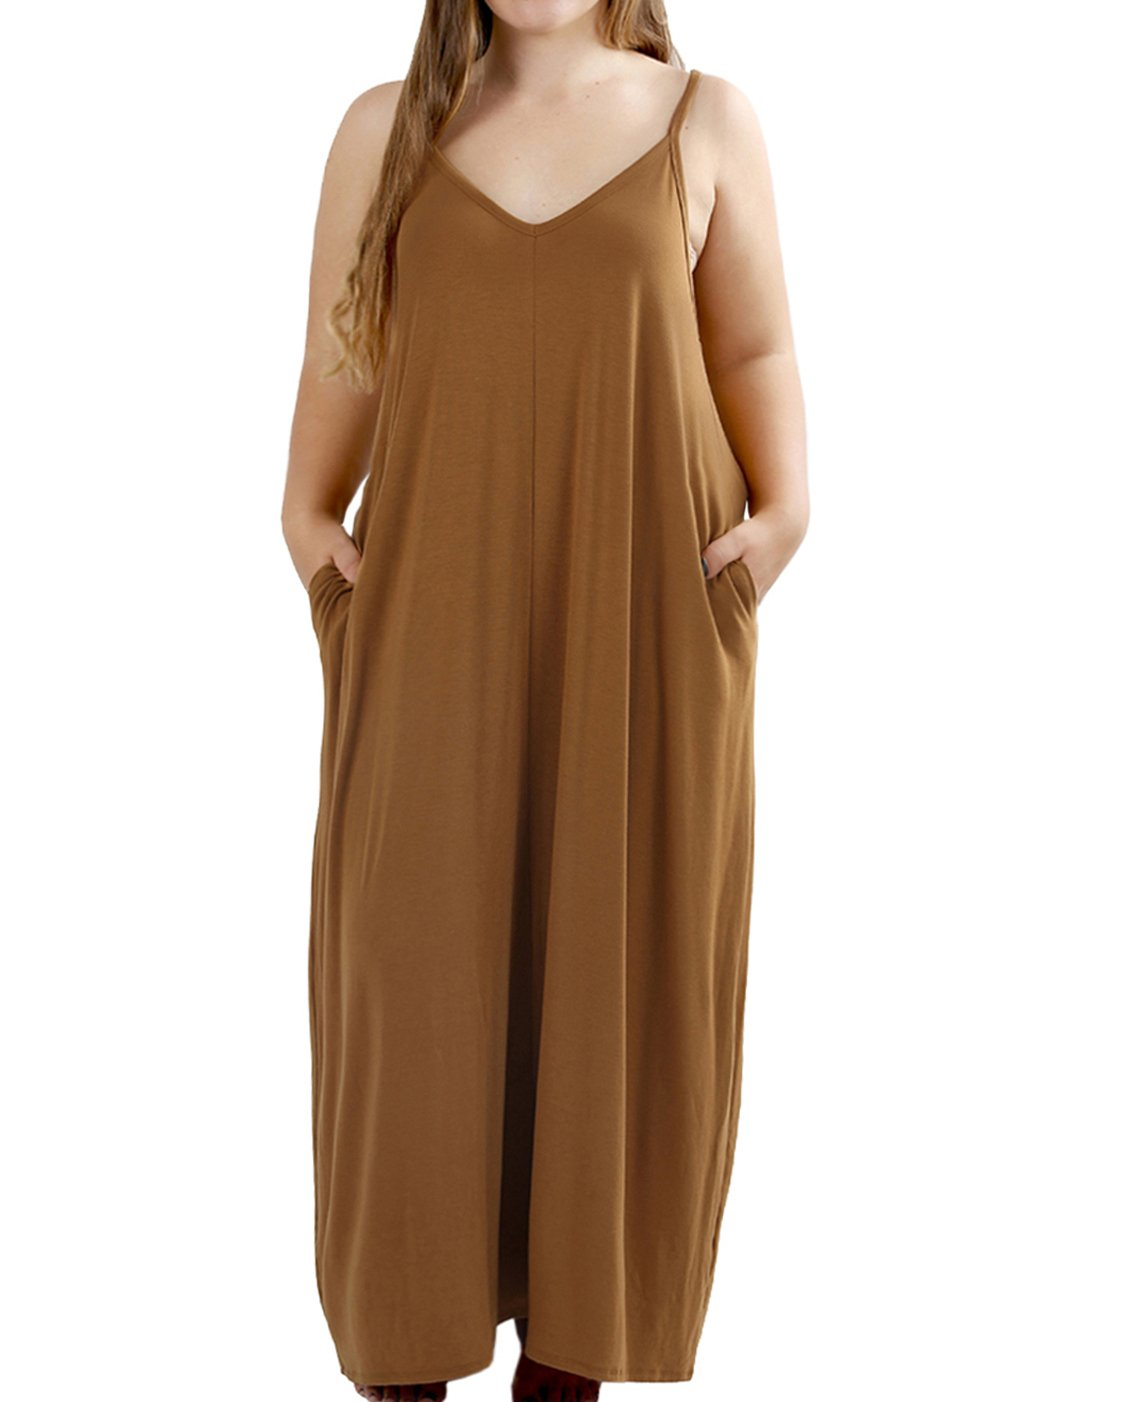 Rotita Women V Neck Sleeveless Loose Plus Size Maxi Dresses with Pockets,Coffee,5X,Coffee,5X